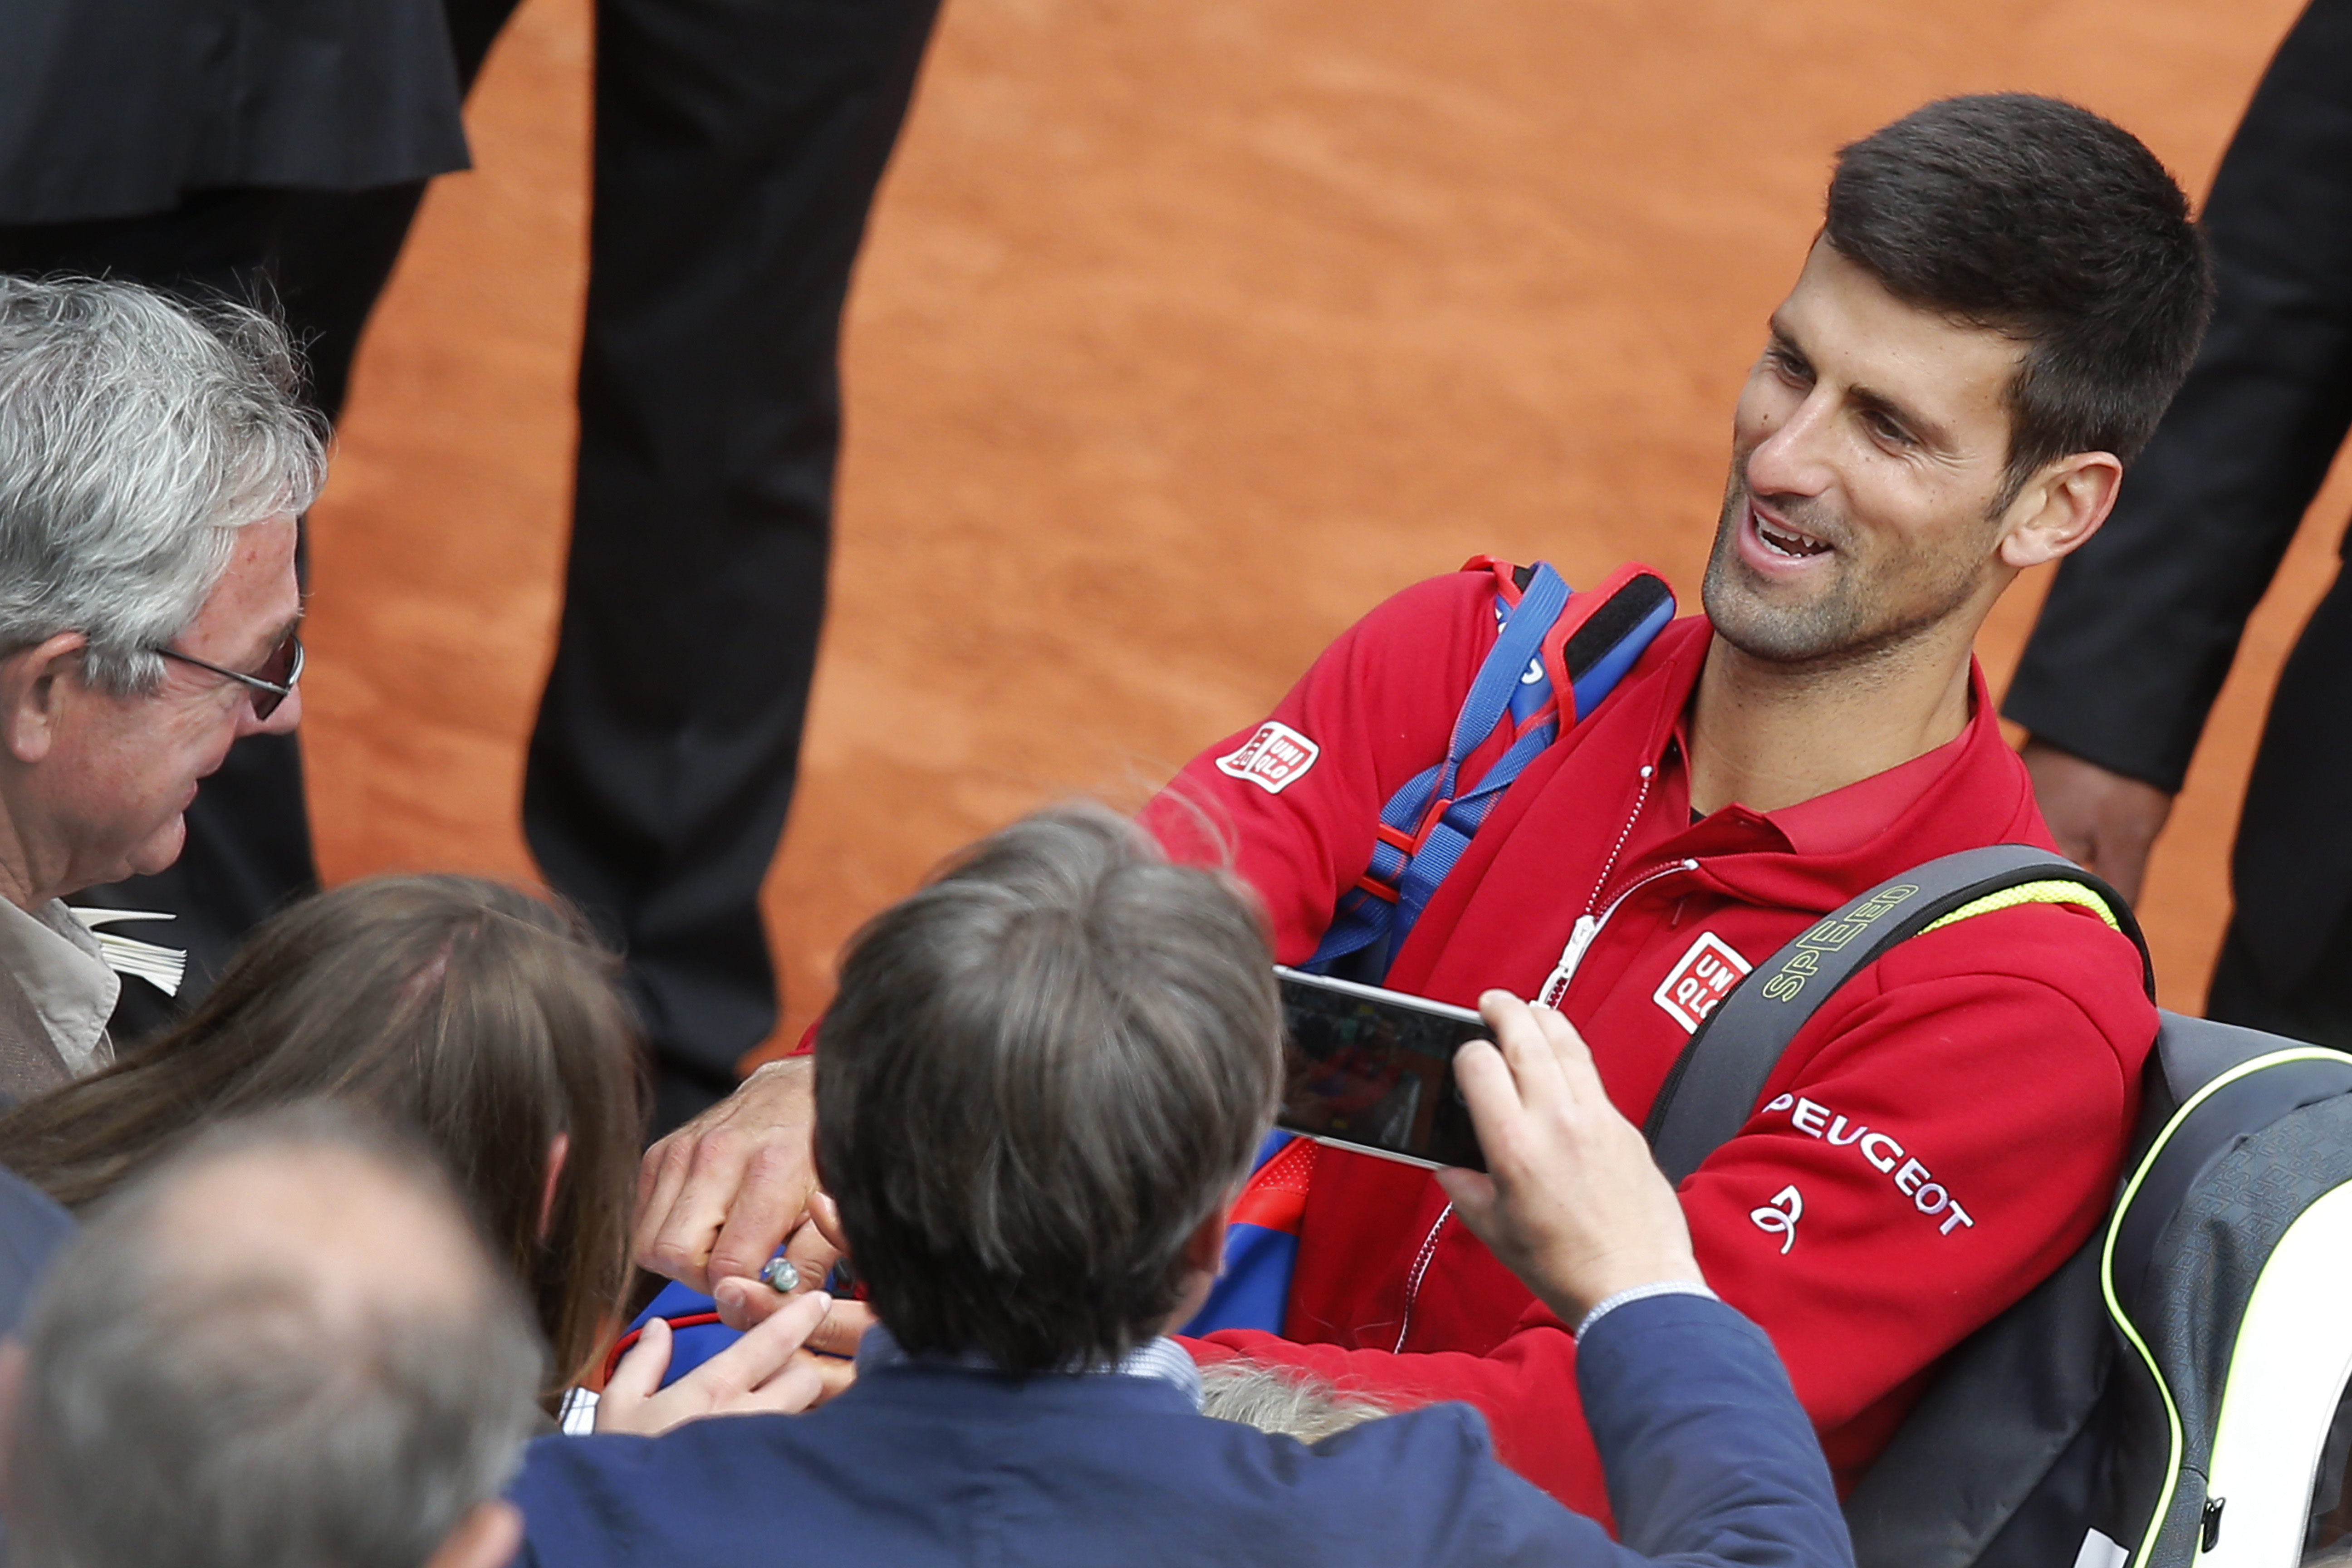 Serbia's Novak Djokovic signs autographs after winning his first round match of the French Open tennis tournament against Yen-Hsun Lu of Taiwan at the Roland Garros stadium in Paris, France, Tuesday, May 24, 2016. (AP Photo/Michel Euler)